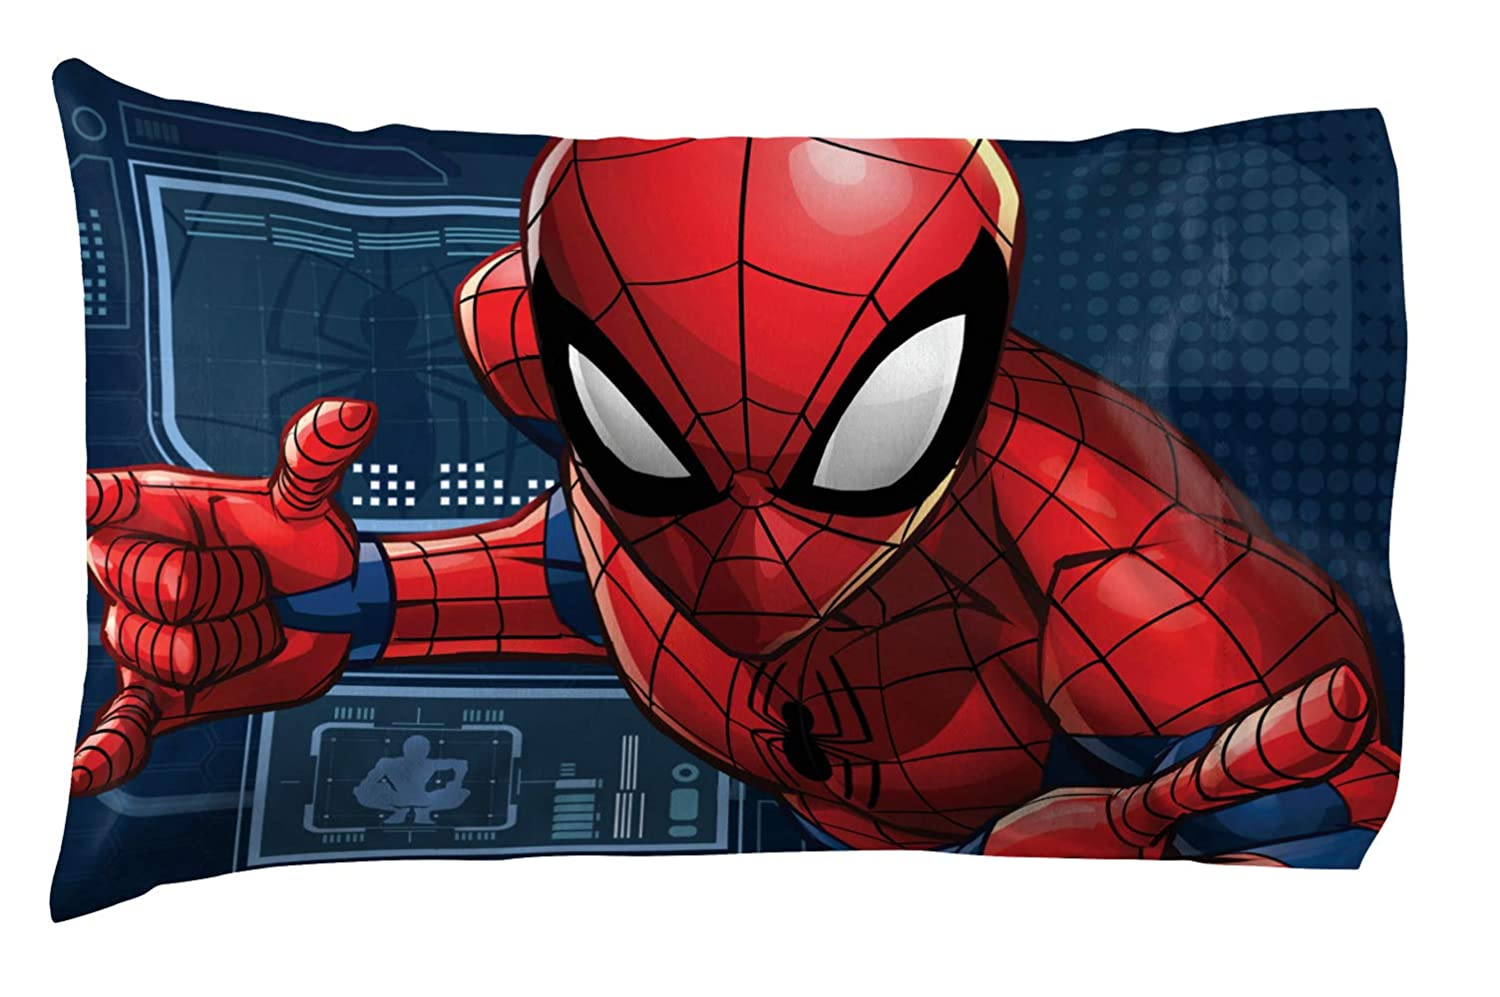 Jay Franco Marvel Spiderman 1 Pack Pillowcase - Double-Sided Kids Super Soft Bedding (Official Marvel Product)